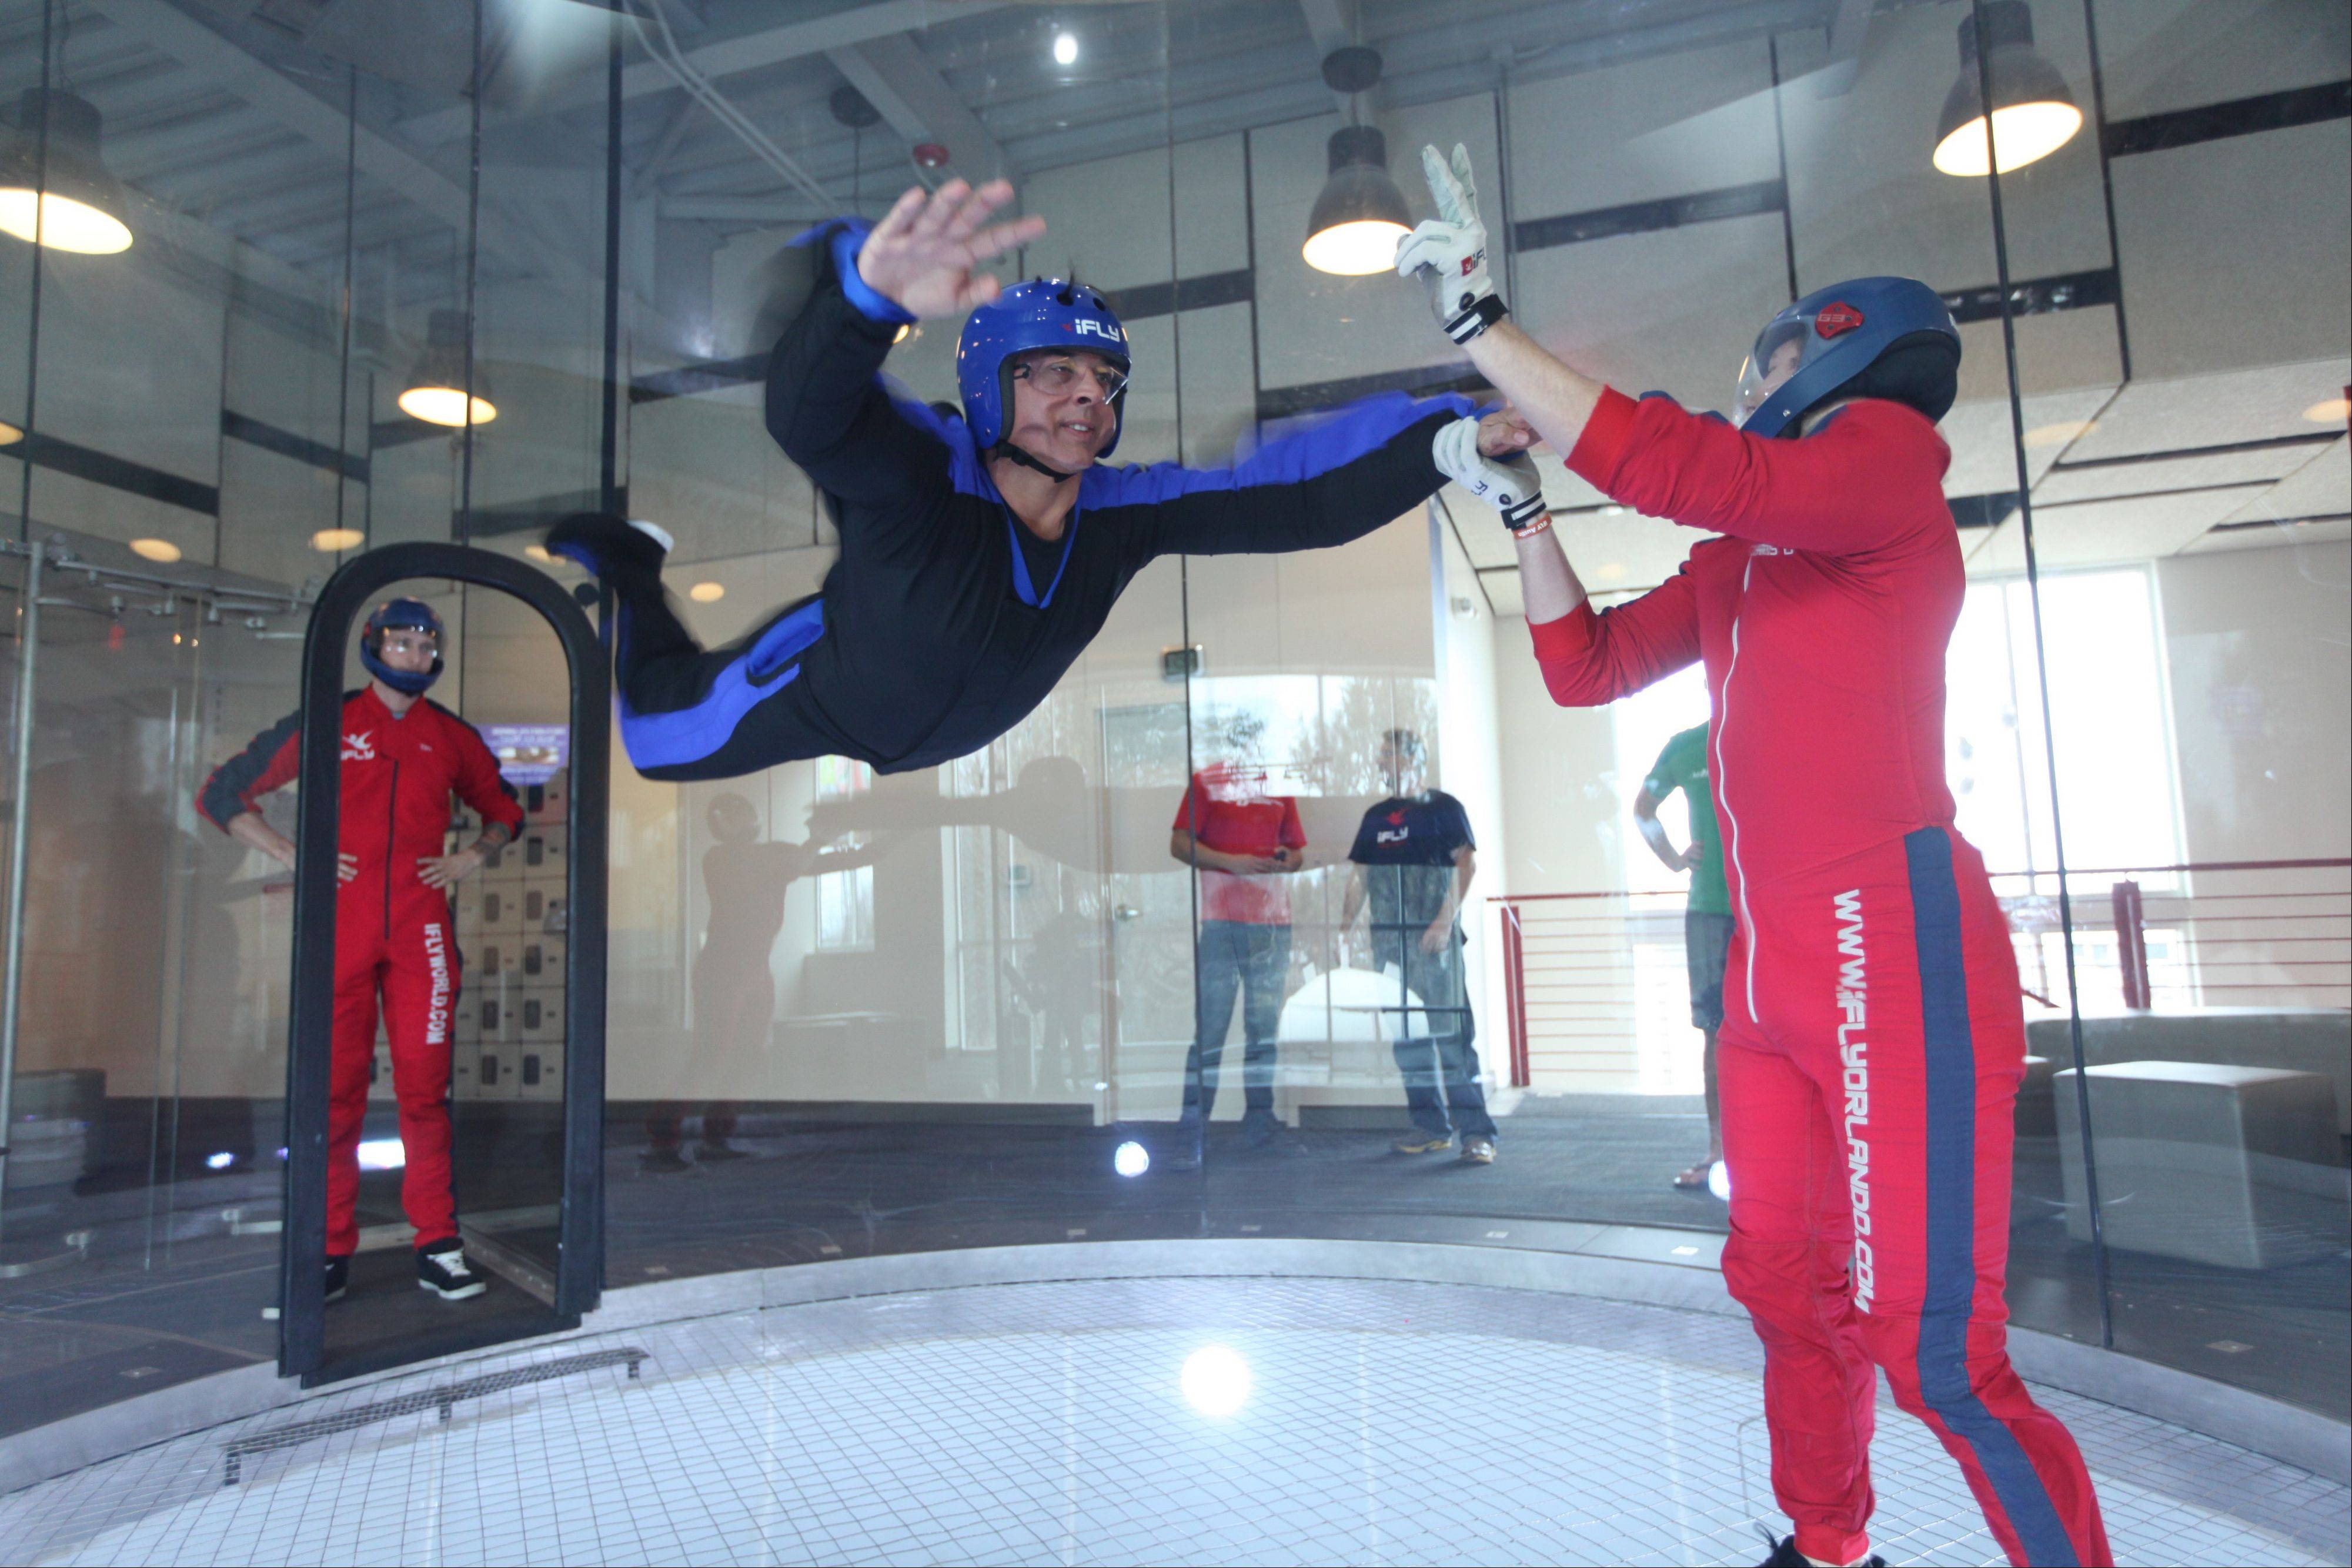 "The Chicago area's second iFly indoor sky-diving facility will be coming to Naperville next spring after the city council unanimously approved the Texas-based company's plans this week. A fan system blowing through a 50-foot tall flight chamber creates the conditions for indoor sky diving, in which participants can ""fly like a superhero"" without jumping out of a plane."